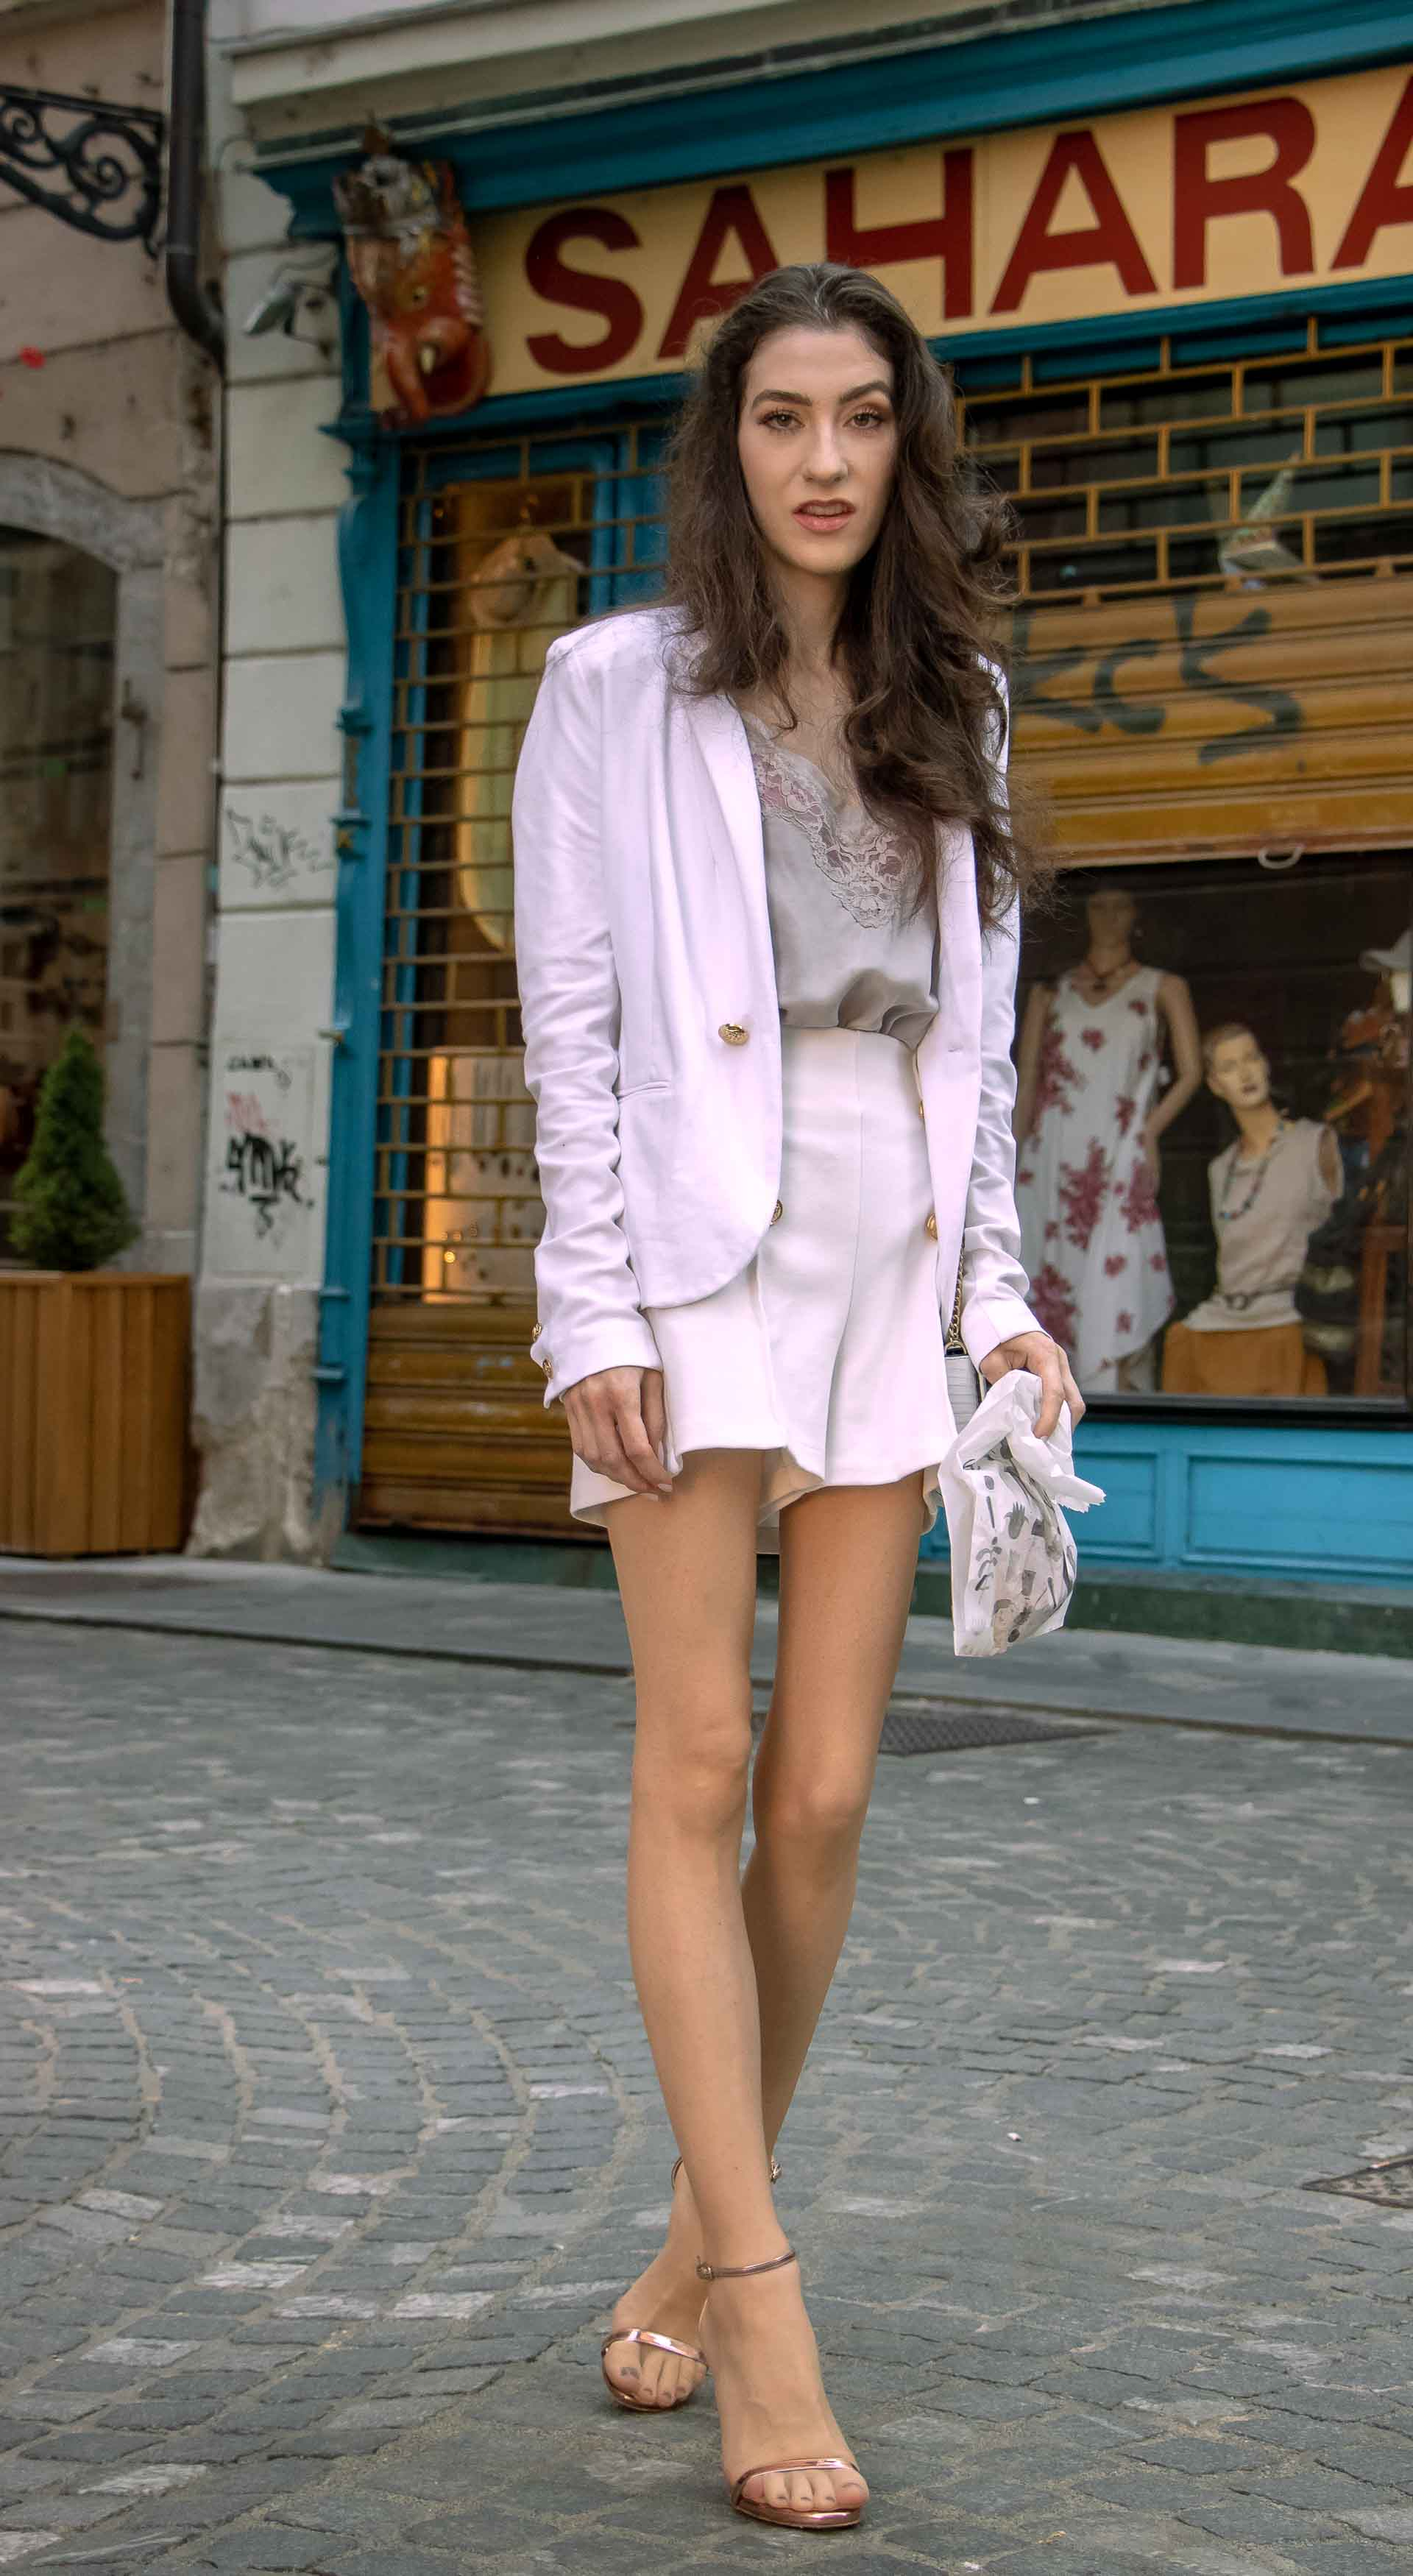 Beautiful Slovenian Fashion Blogger Veronika Lipar of Brunette from Wall wearing all in white suit, white blazer, white tailored shorts, Stuart Weitzman high shine metallic nudist song sandals, shoulder bag with a paper bag on the street in the morning after nuit blanche